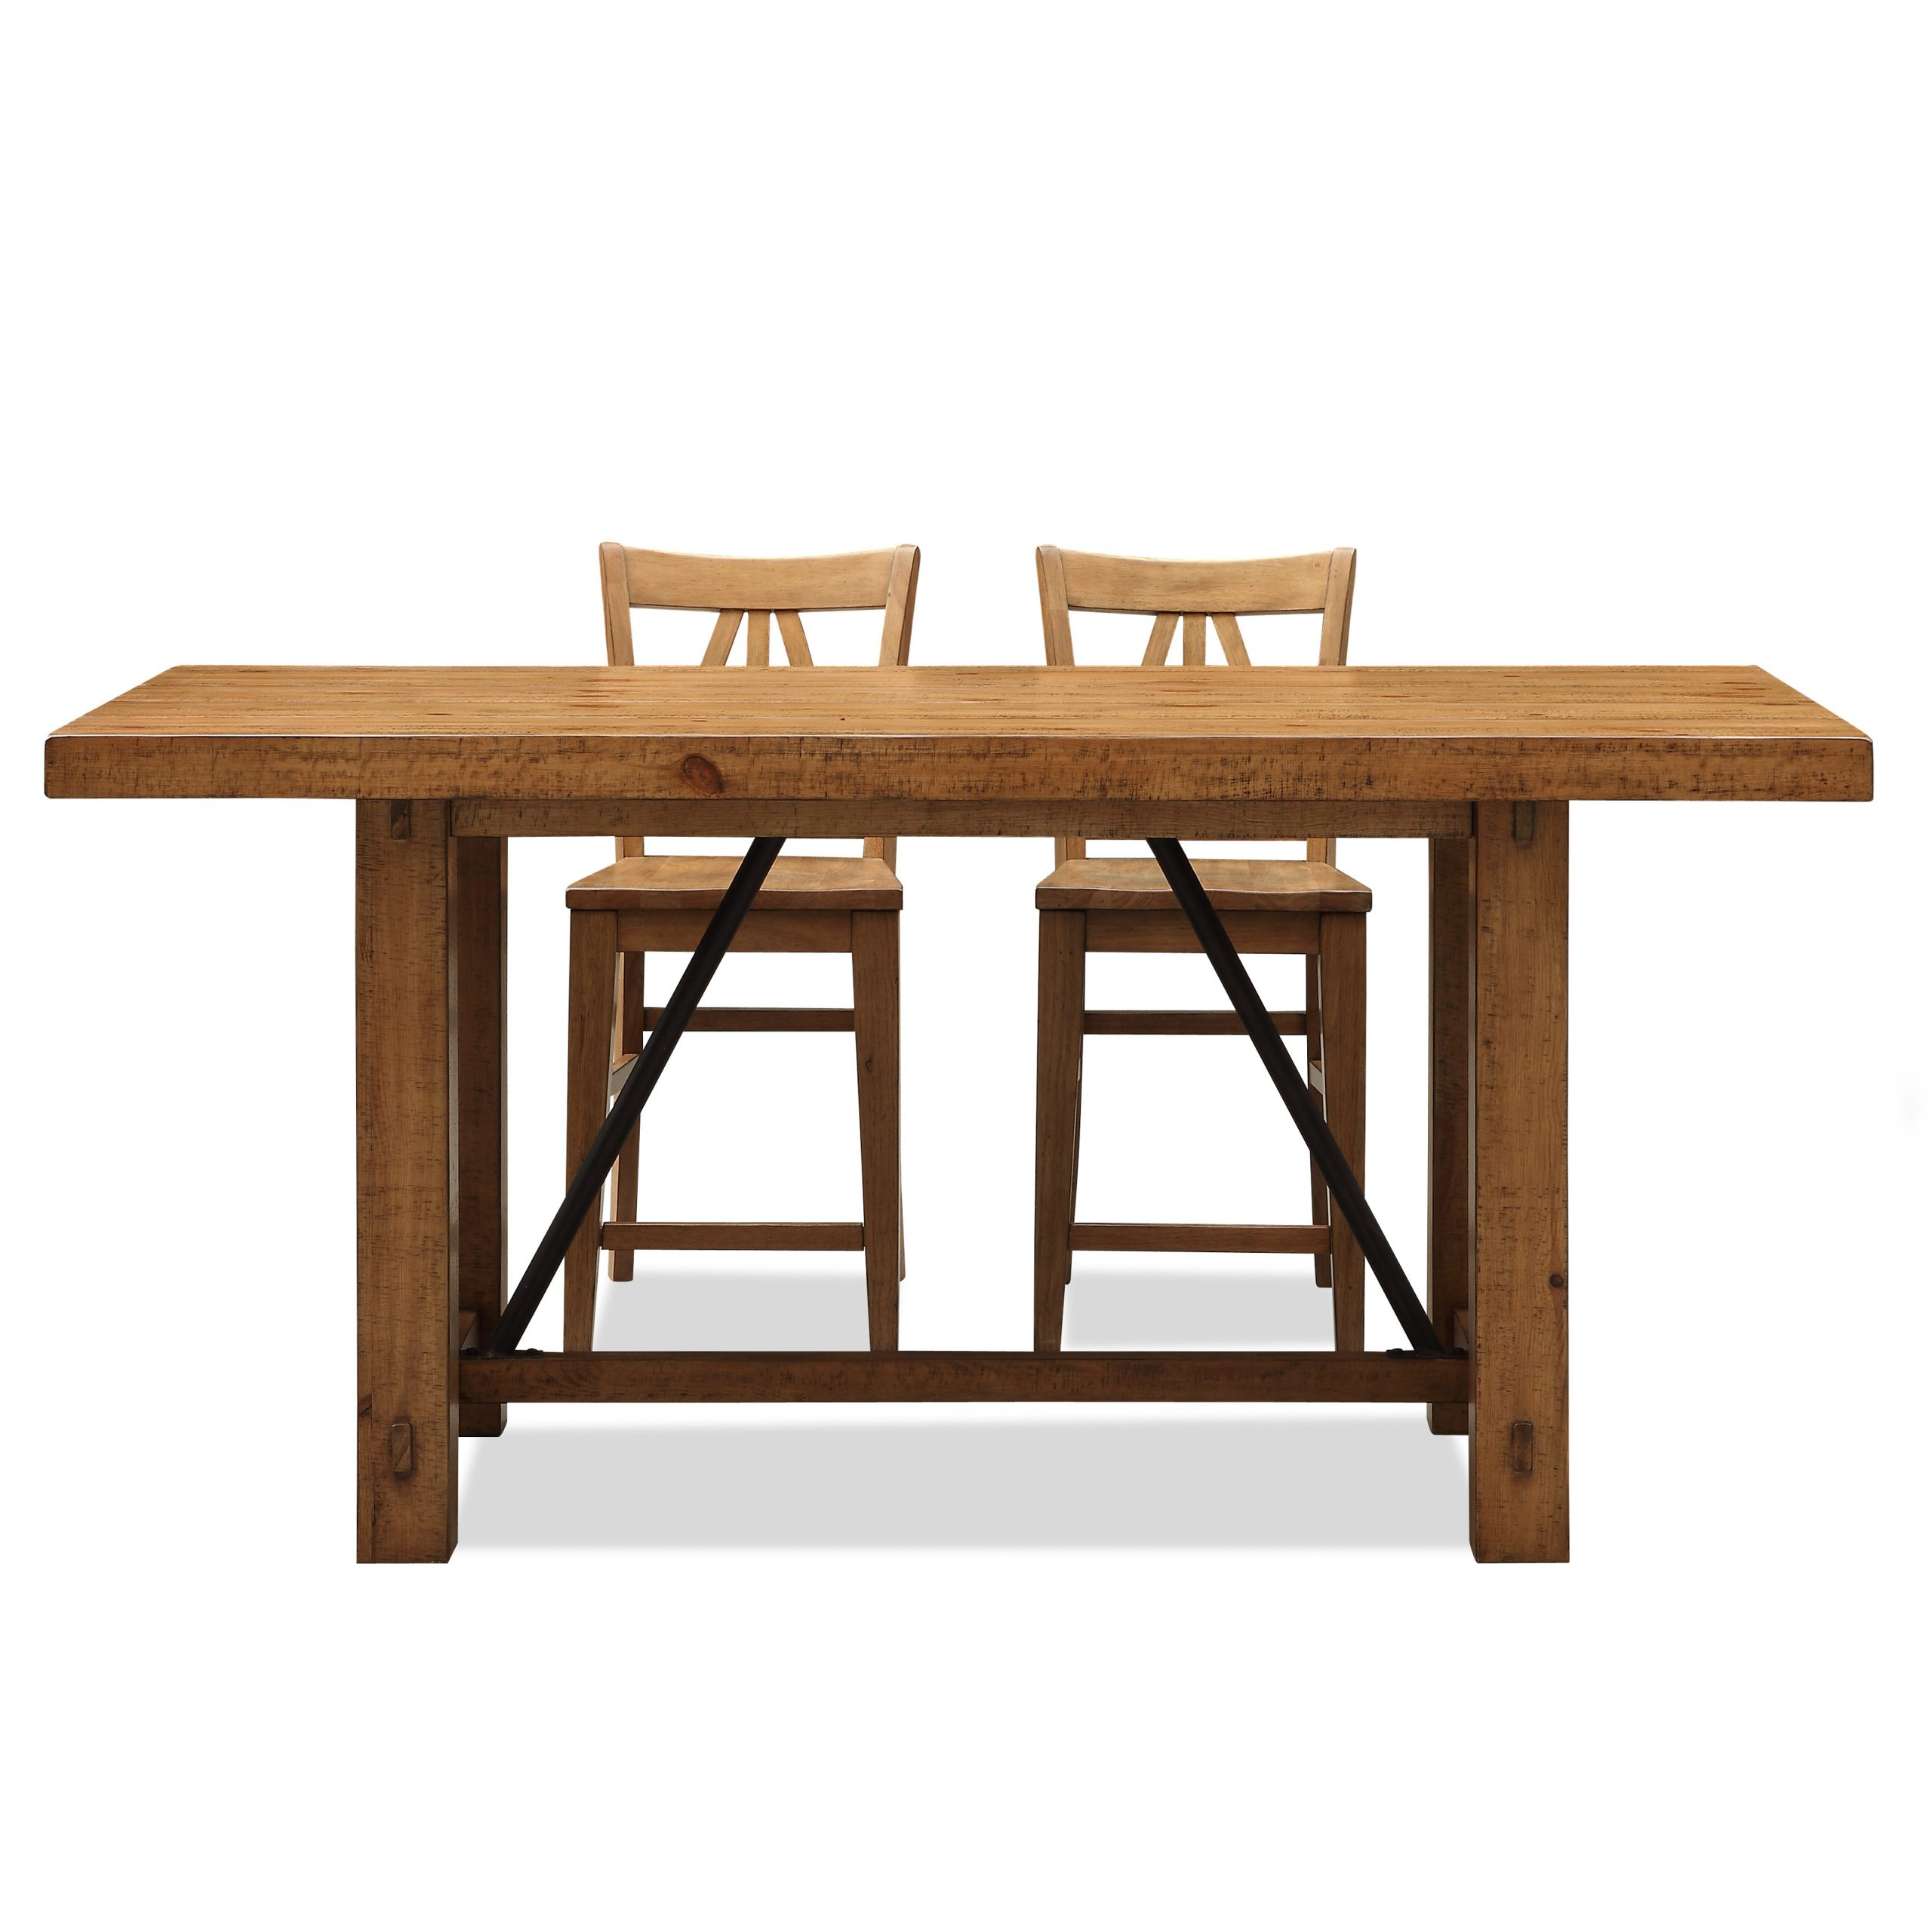 Riverside Summerhill Trestle Counter Height Dining Table In Best And Newest Romriell Bar Height Trestle Dining Tables (View 14 of 15)